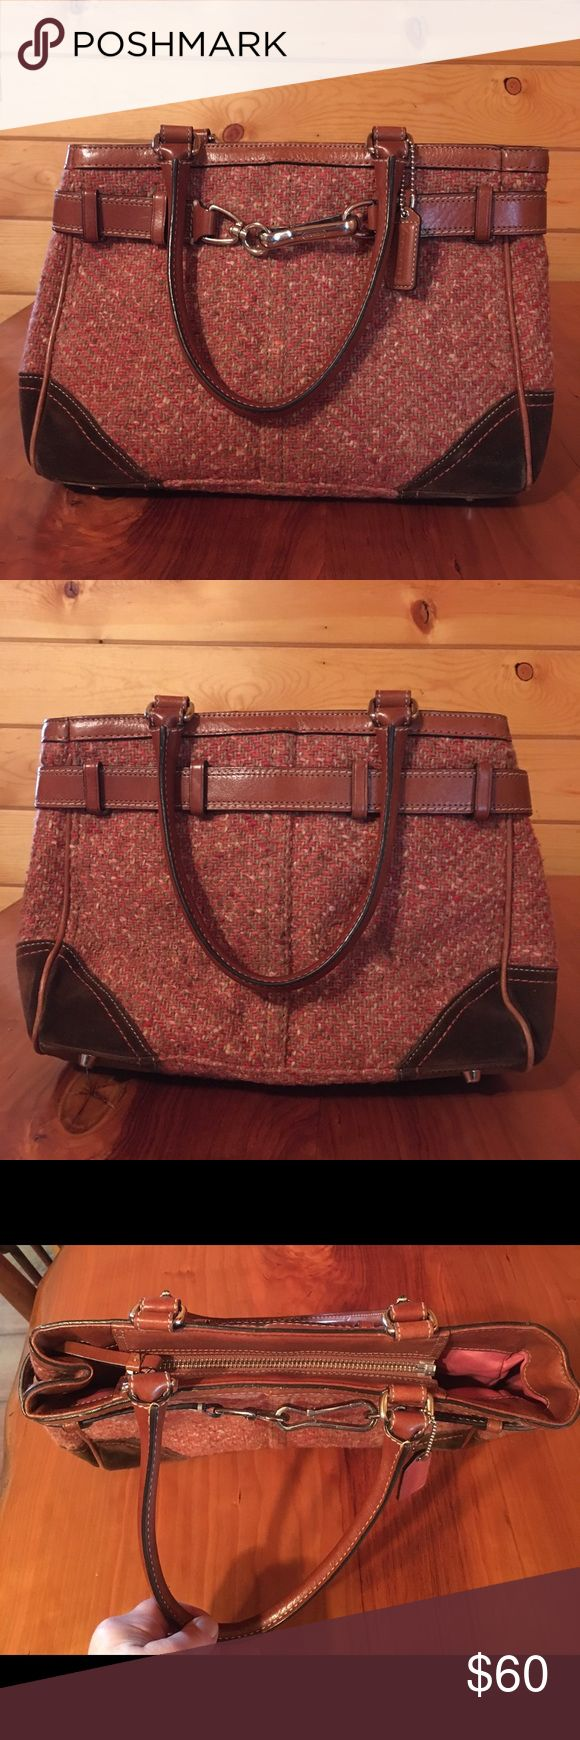 """Coach Handbag 👜 Coach Scaro Hampton Herringbone Tote. F11215 Cam Rose, Tweed fabric & Leather trim. Silver hardware, Top Zip closure, metal bottom feet for protection. Interior fabric lining, inside zip pocket, cellphone and multifunction pockets. Leather straps 6-1/2"""" drop.  12-1/2"""" (L) x 8-1/2"""" (H) x 4-3/4"""" (D).  GUC Coach Bags Totes"""